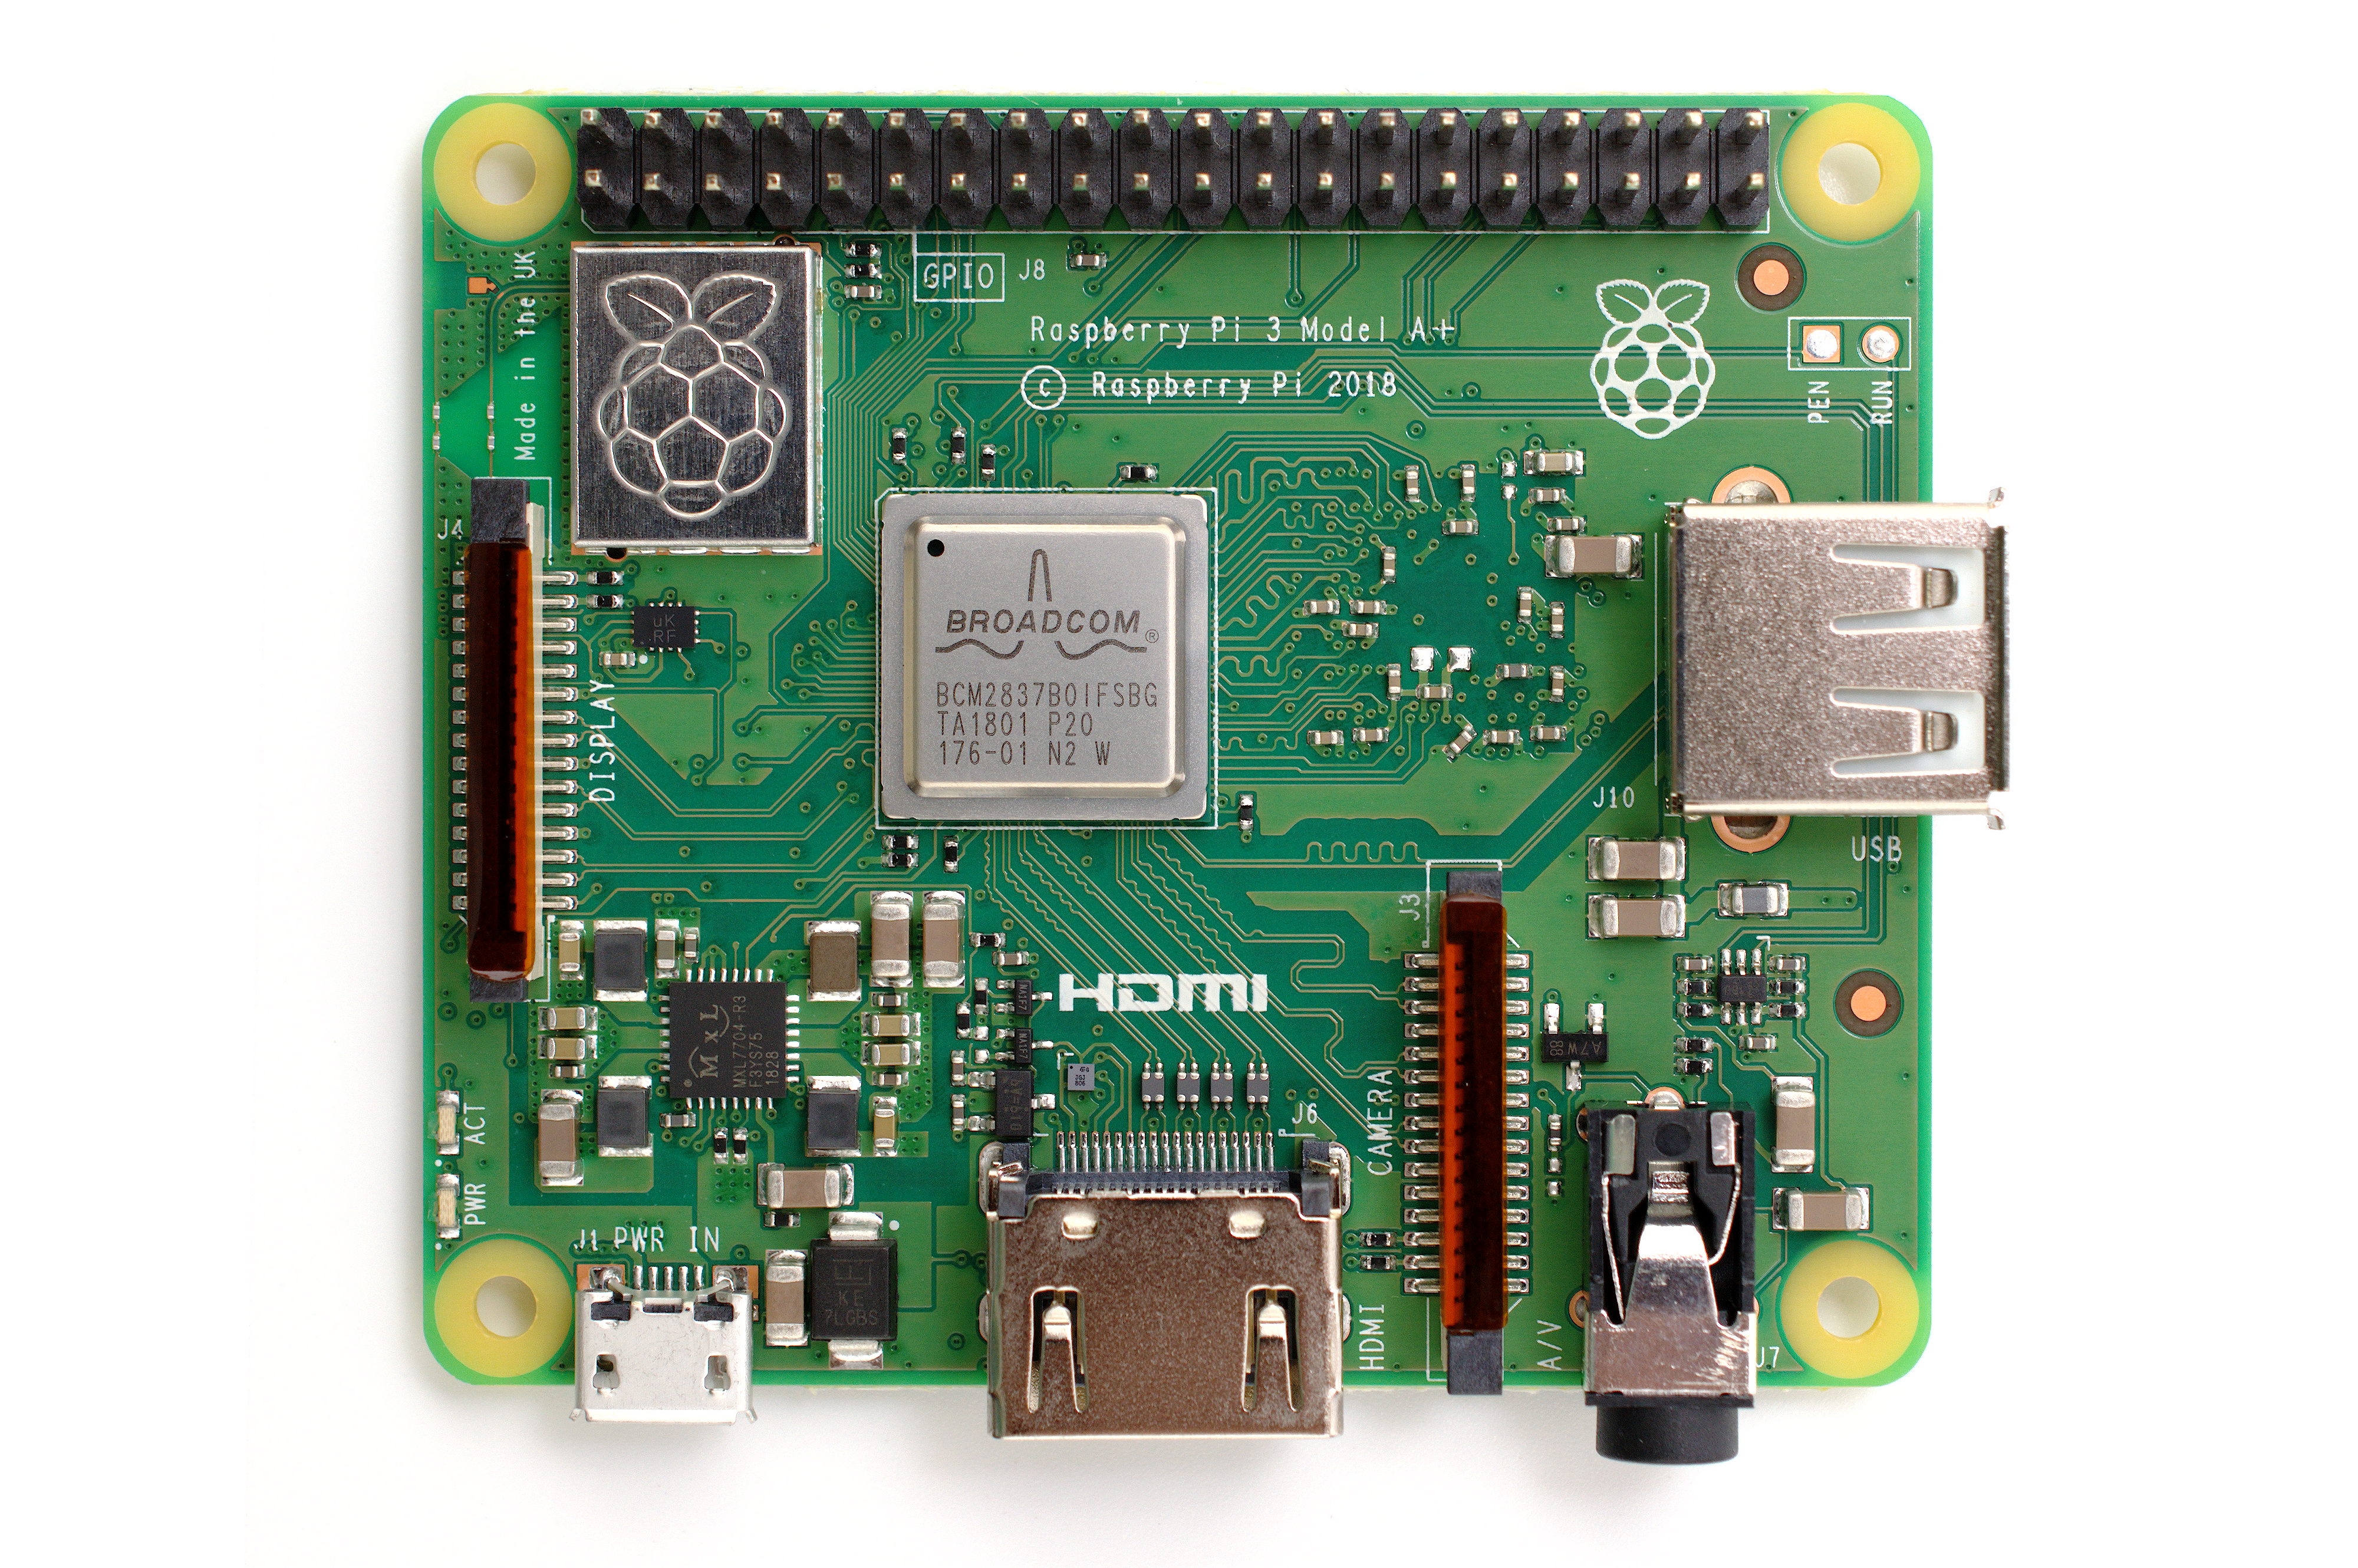 Benchmarking the Raspberry Pi 3 A+ - Gareth Halfacree - Medium